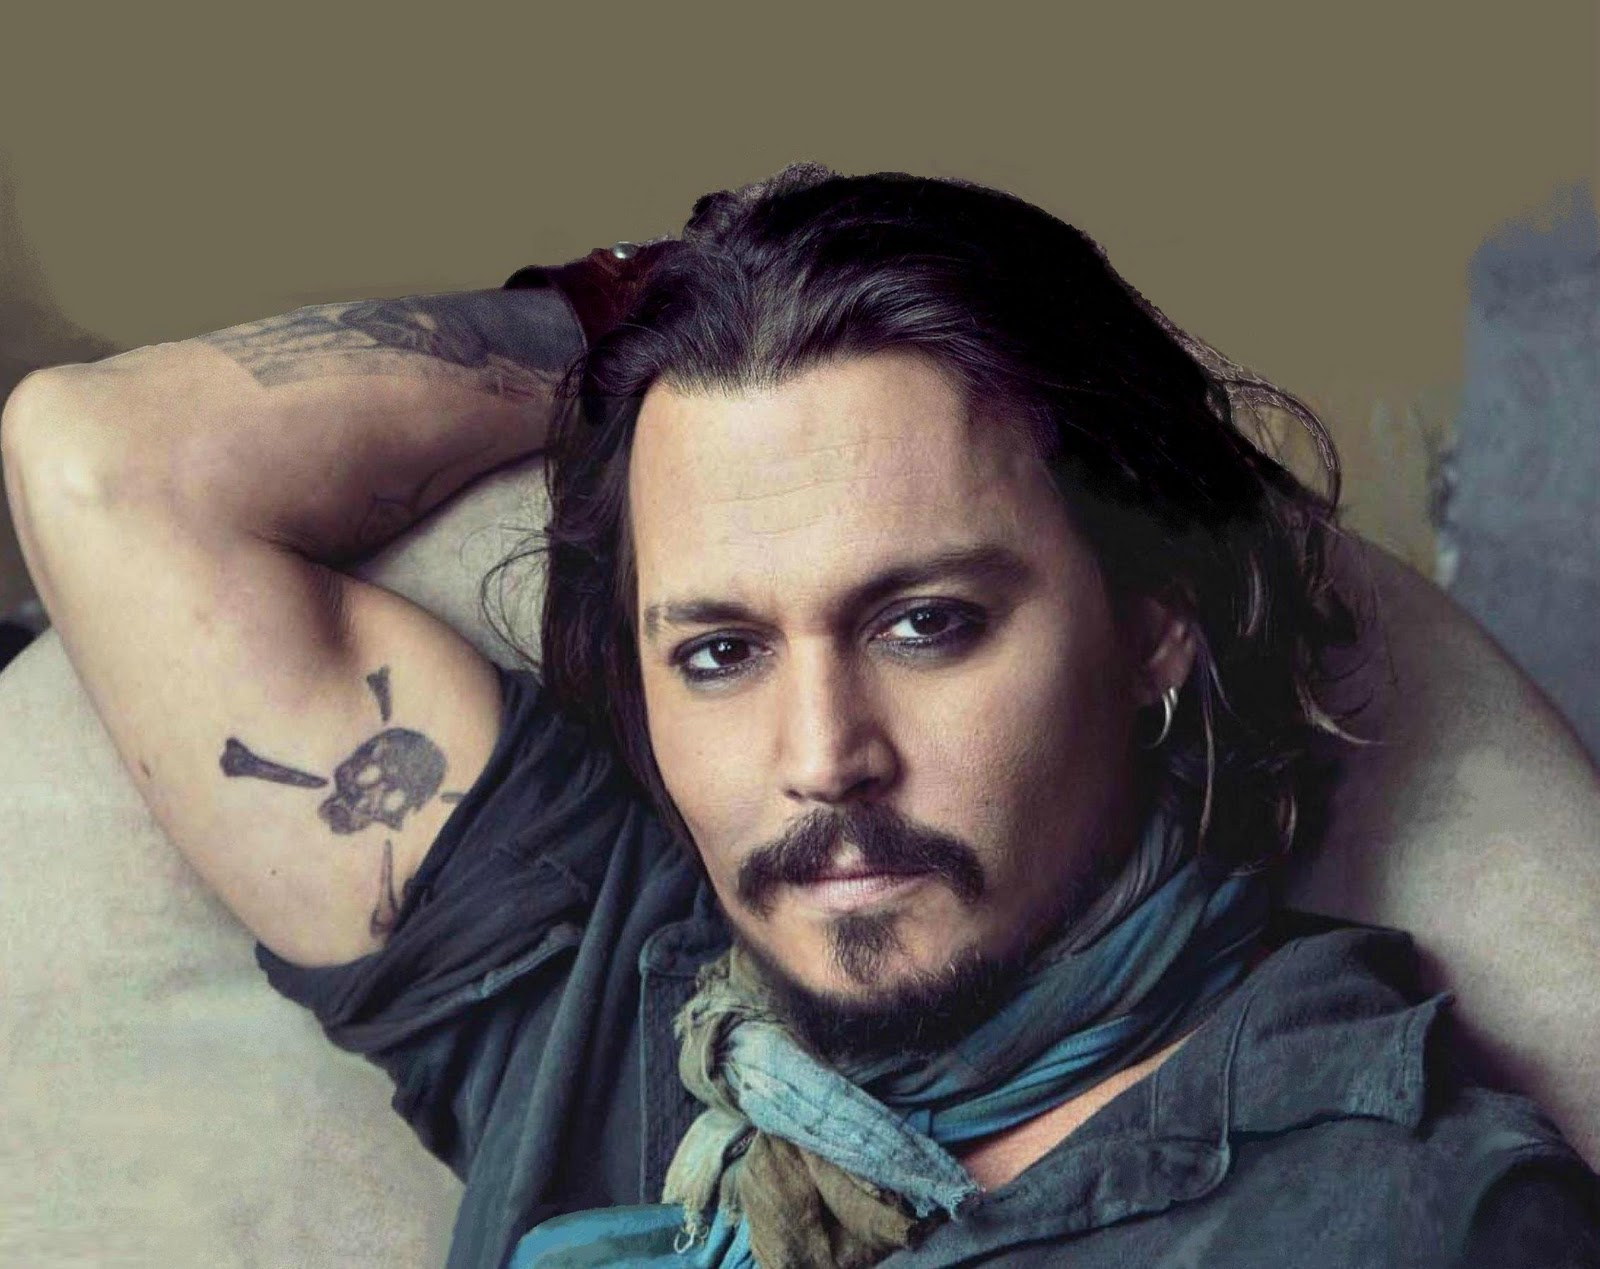 http://3.bp.blogspot.com/-HYumlDu5xUs/TyTt36bBVSI/AAAAAAAAAB4/jm8qBuml2y4/s1600/Favorite+Celebrity+Tattoo+Design+Johnny+Depp+or+better+known+as+Jack+sparrow+from+Pirates+of+the+Caribbean.jpg